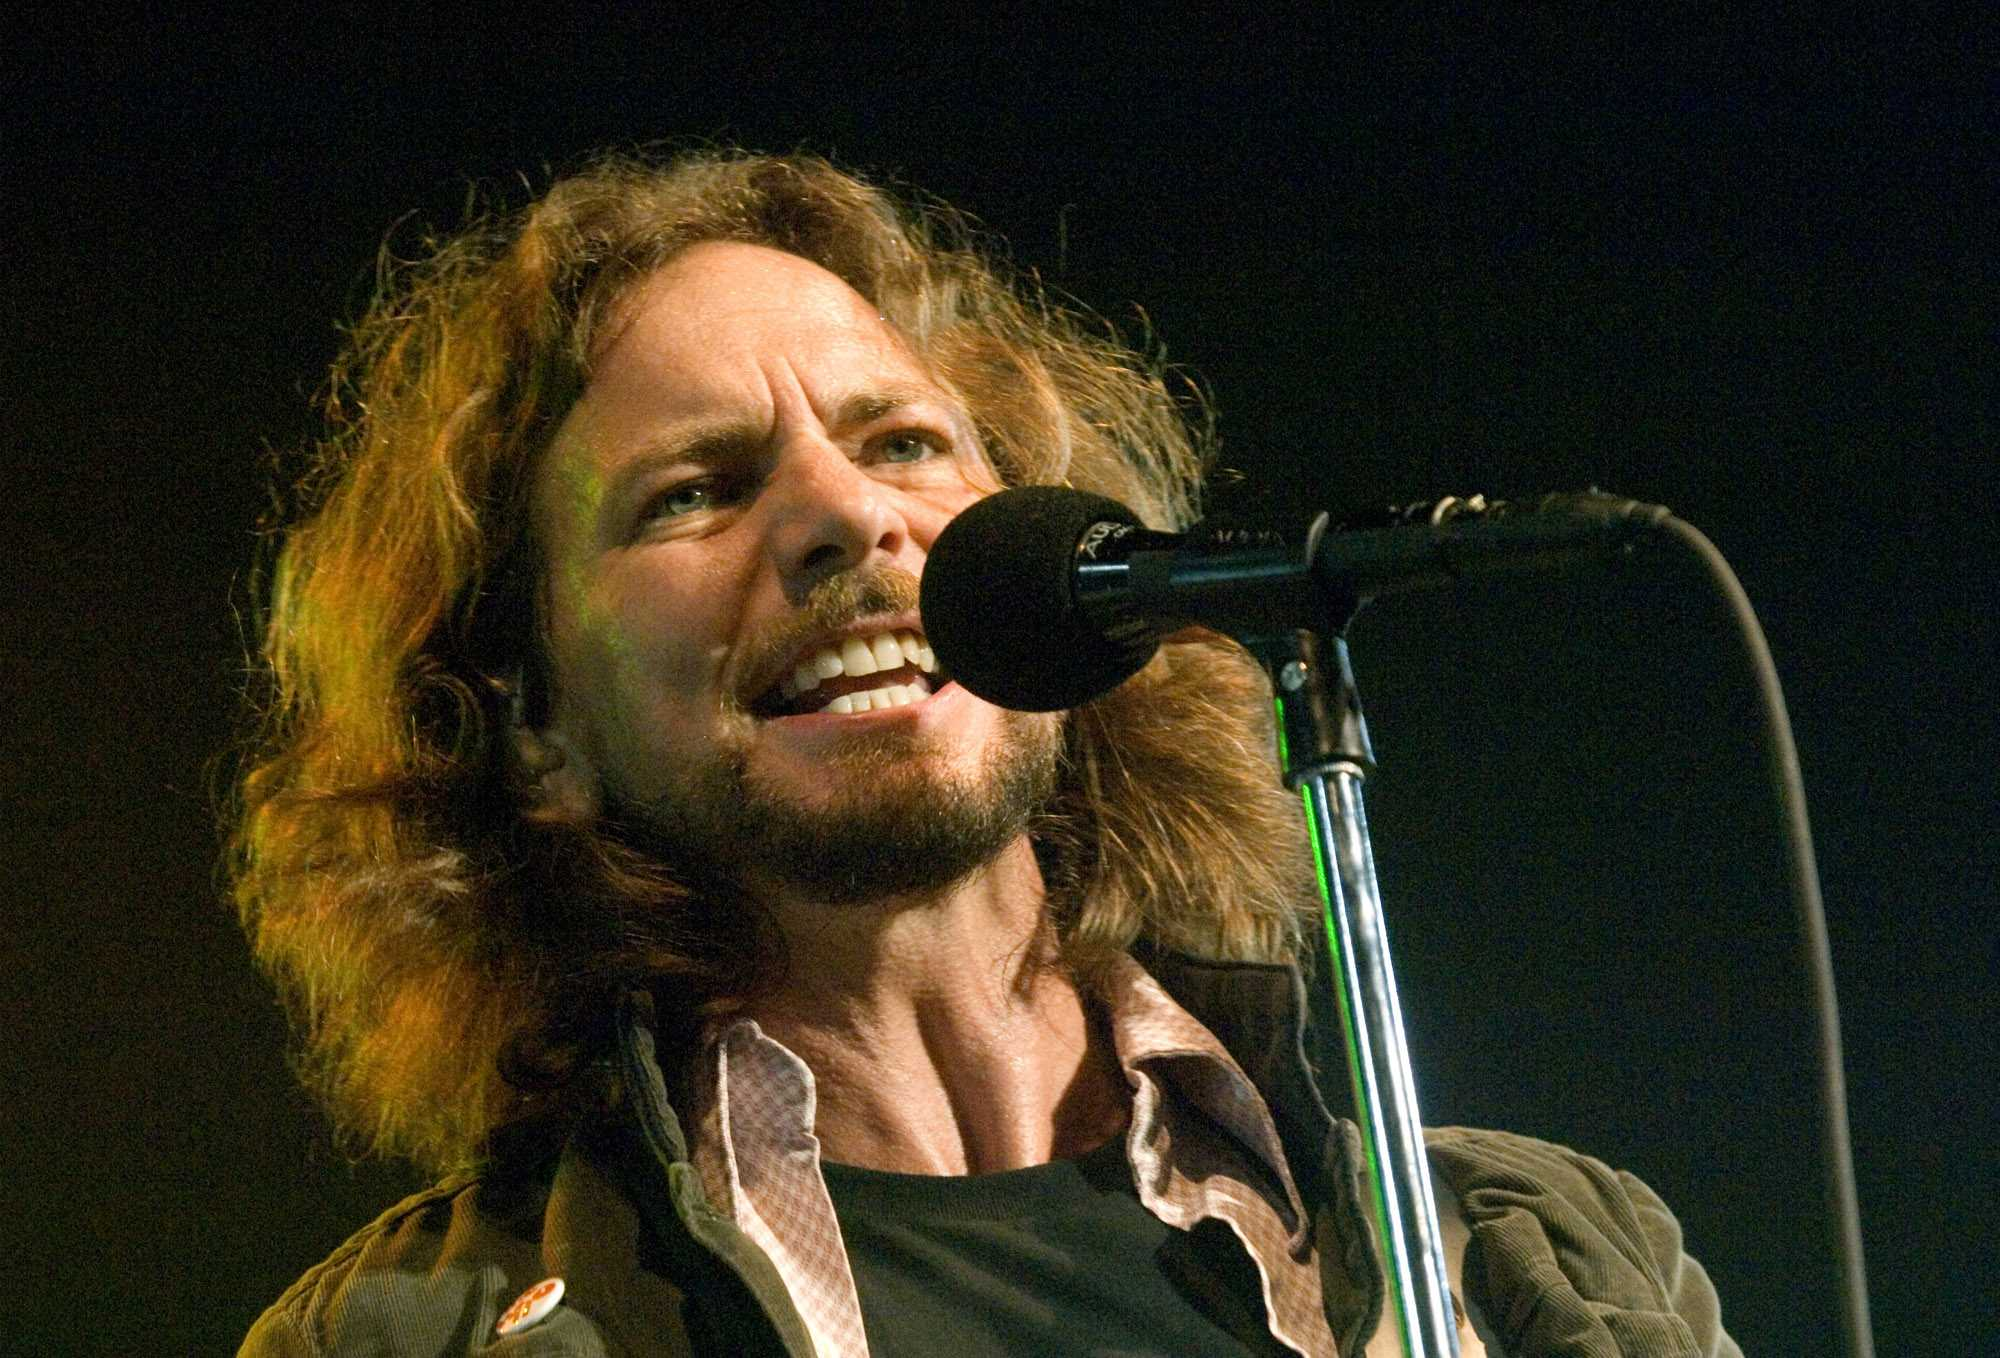 Eddie Vedder from Pearl Jam is upset at the f ckers in Oklahoma City    Young Eddie Vedder